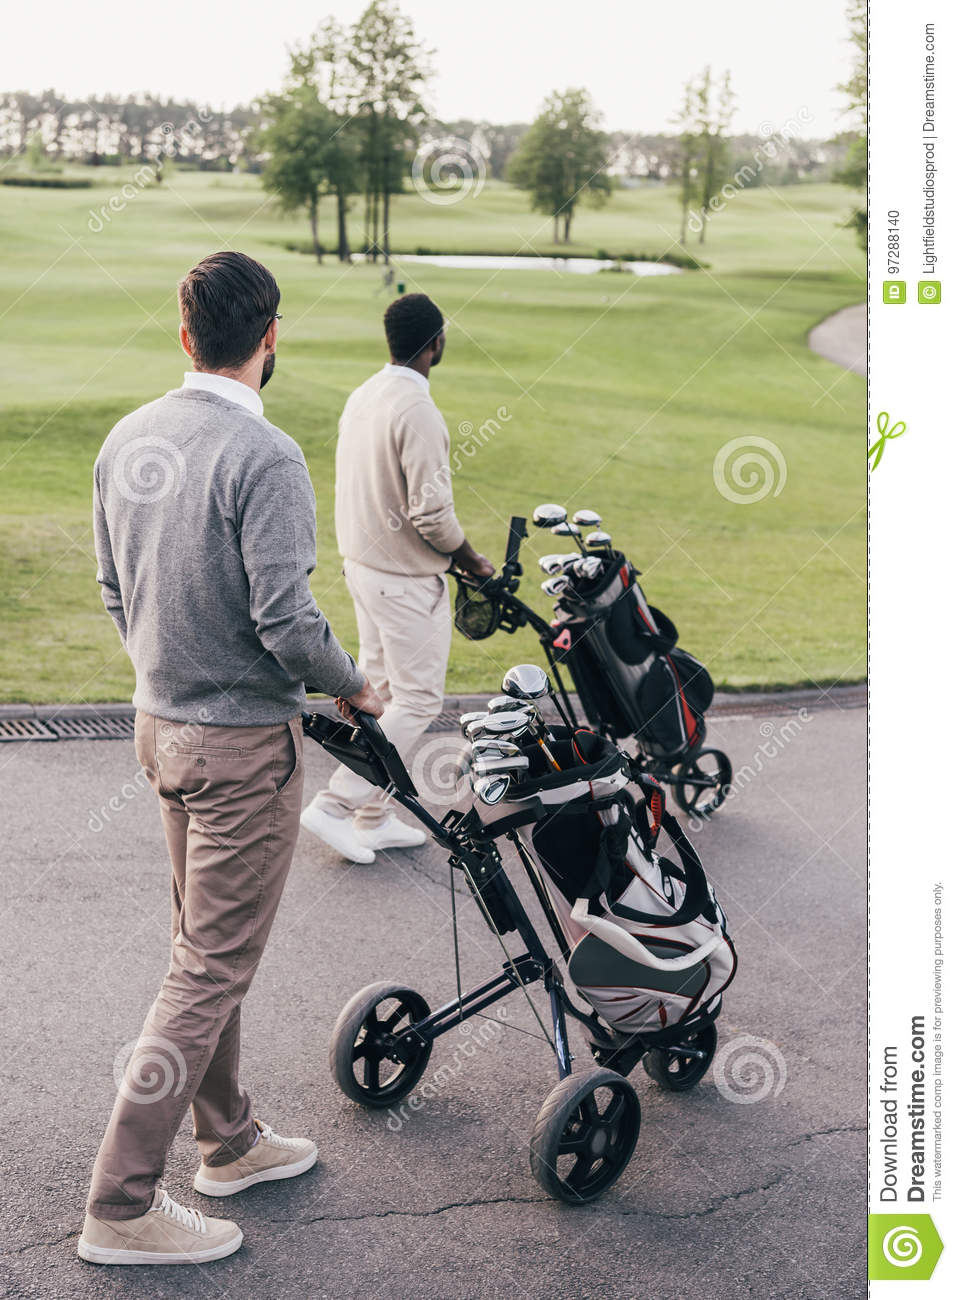 Two men carrying golf clubs in golf bags and walking at golf course